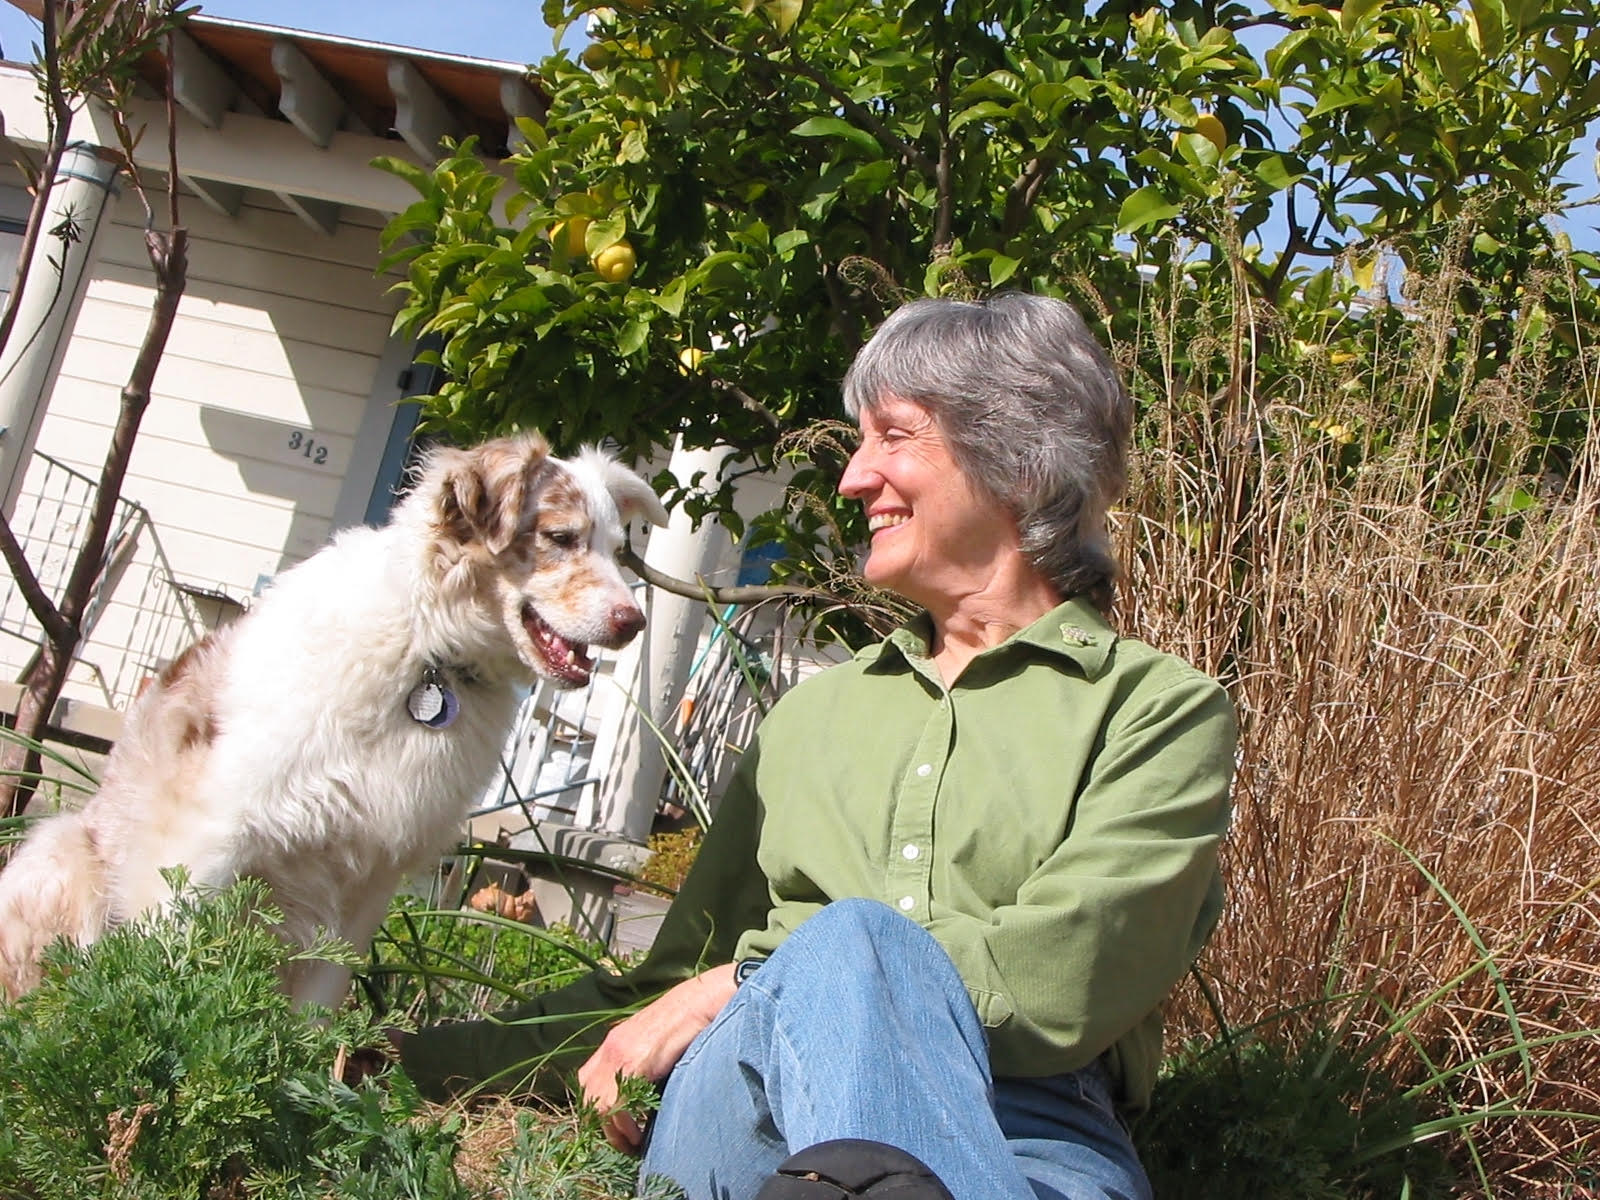 Donna Haraway outside with dog